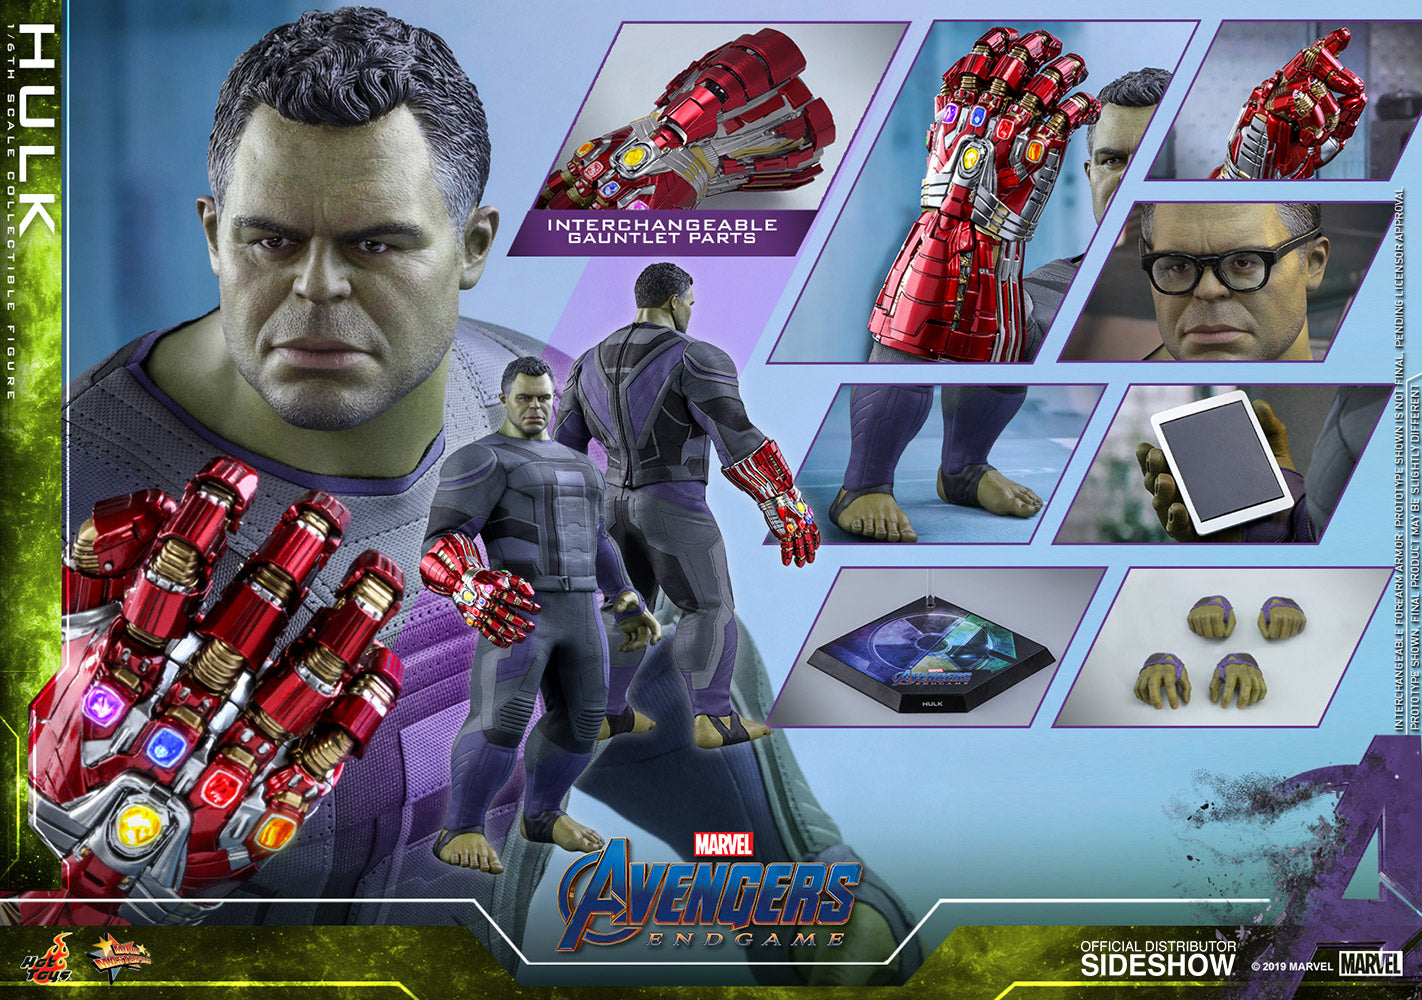 Hot Toys Hulk Avengers: Endgame Sixth Scale Figure - Collectors Row Inc.